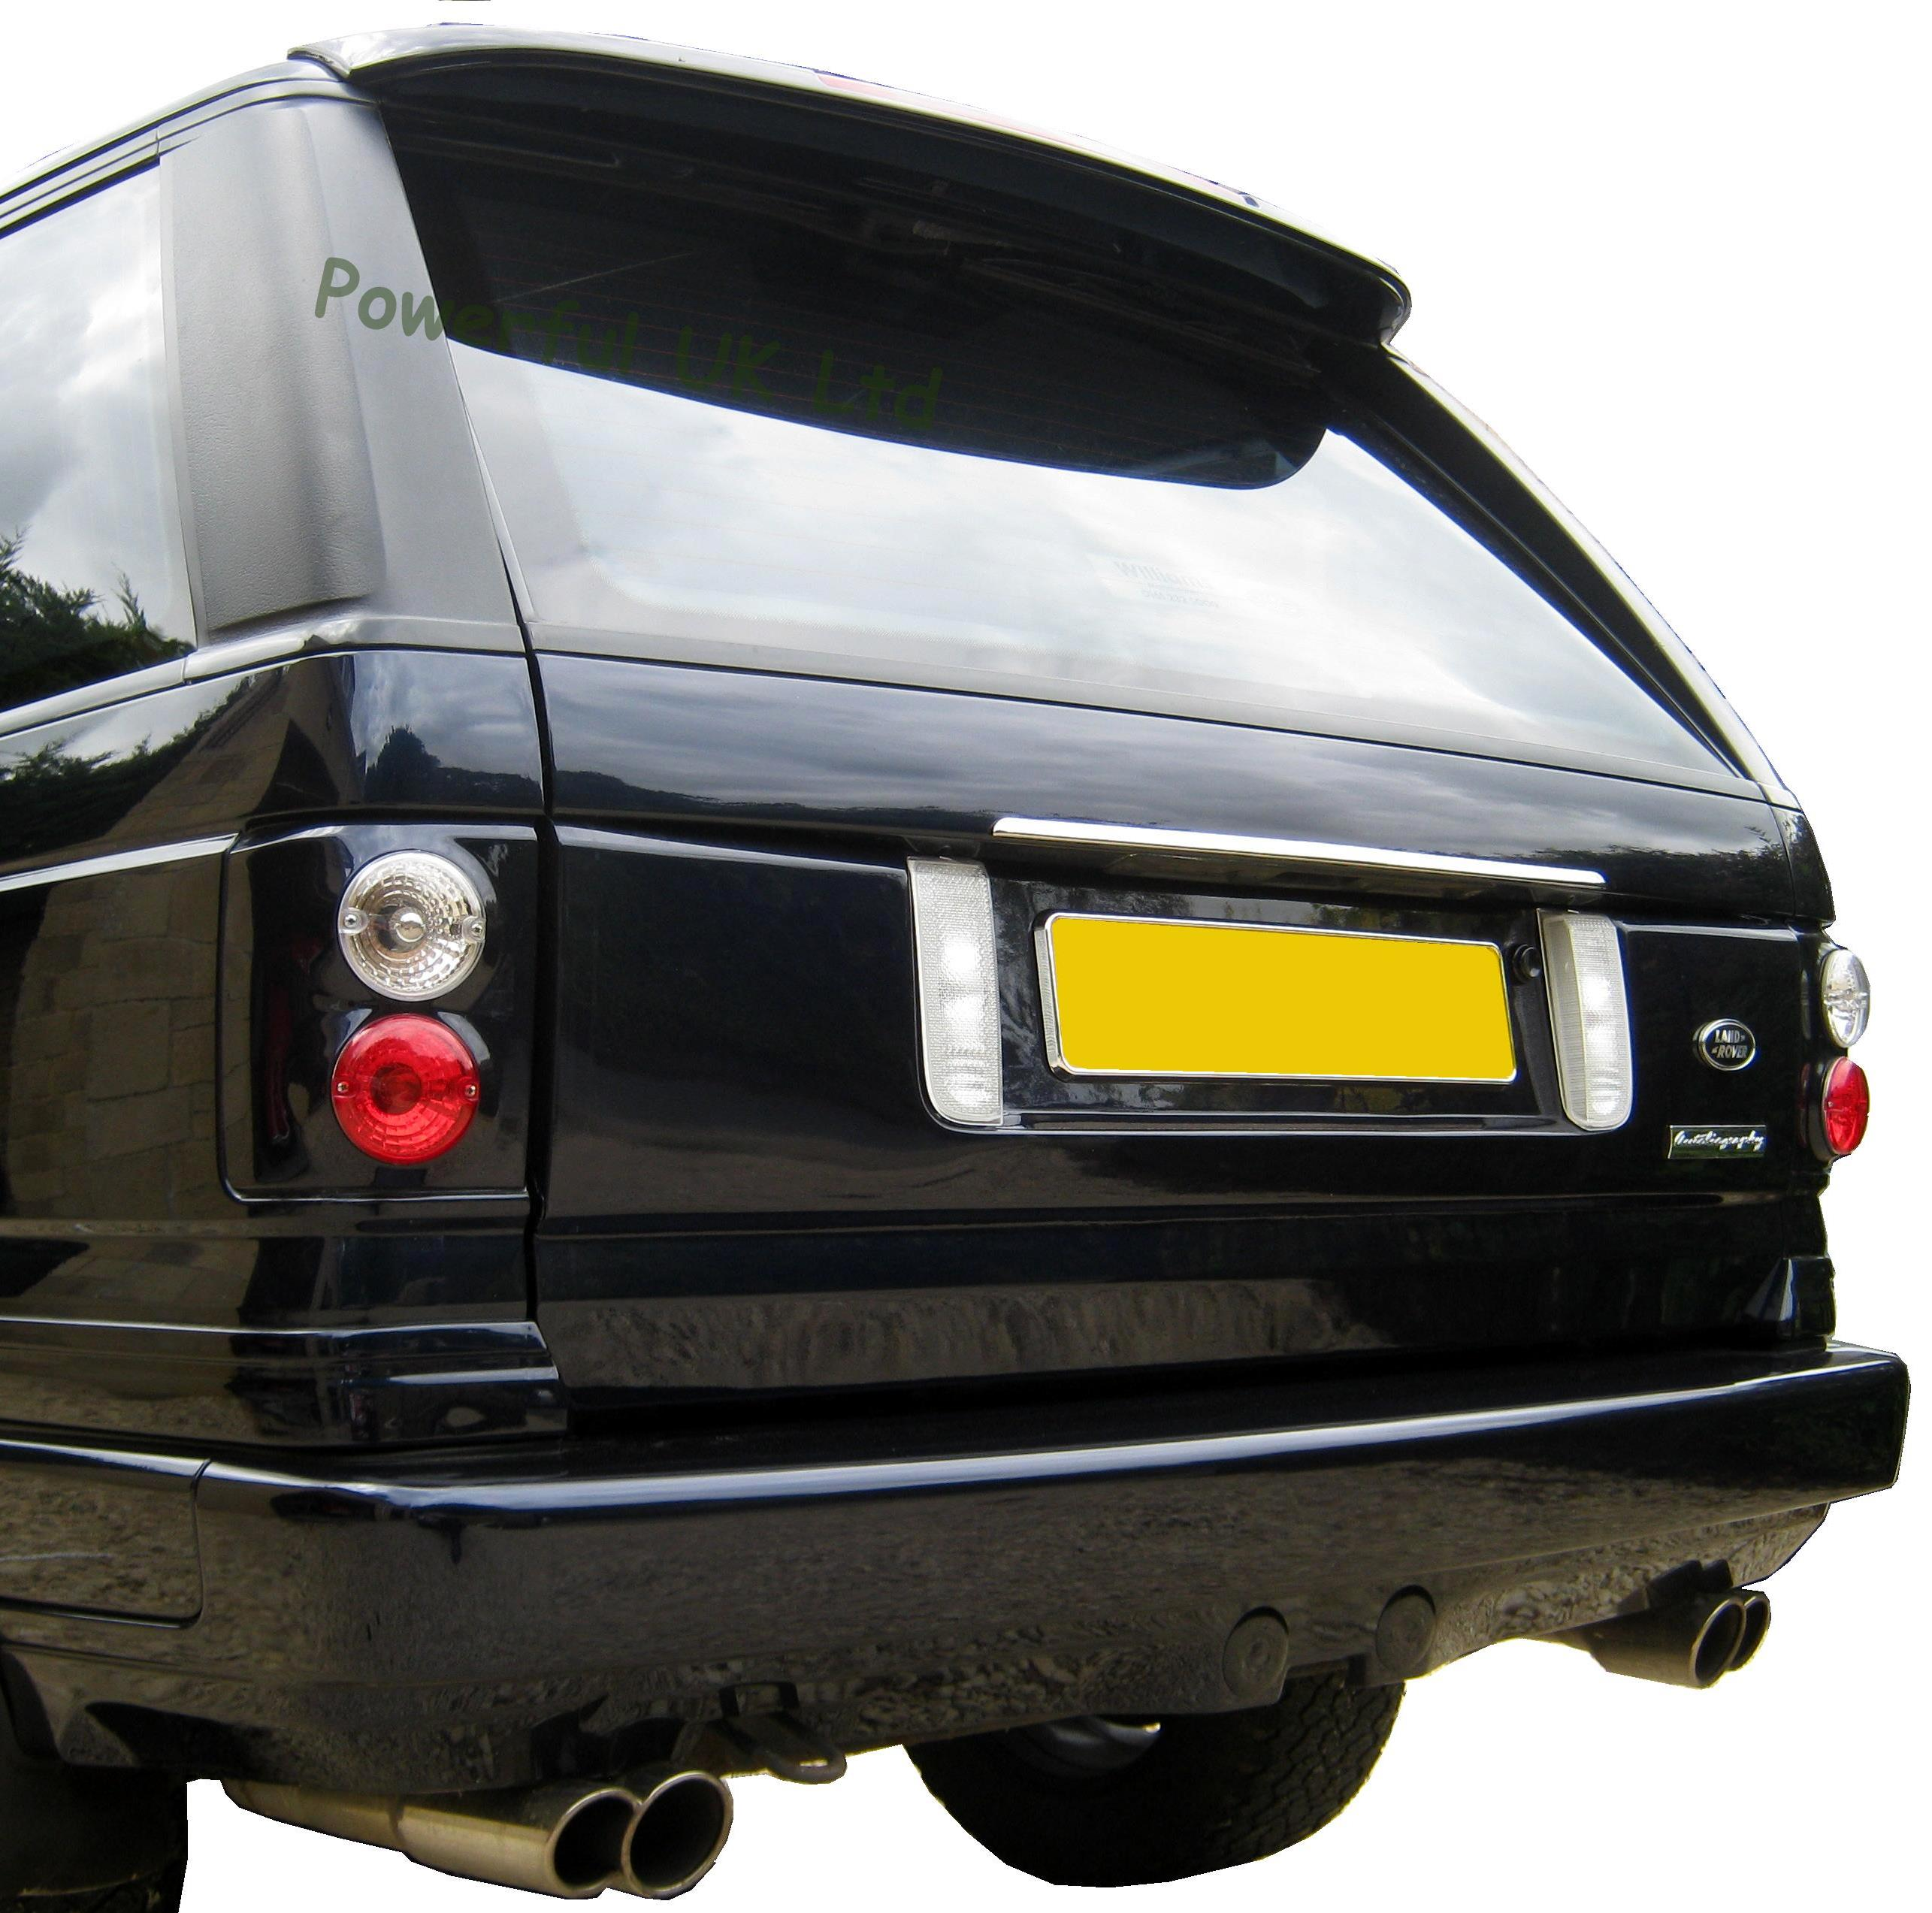 Range Rover P38 to L322 Rear tailgate conversion kit body moulding